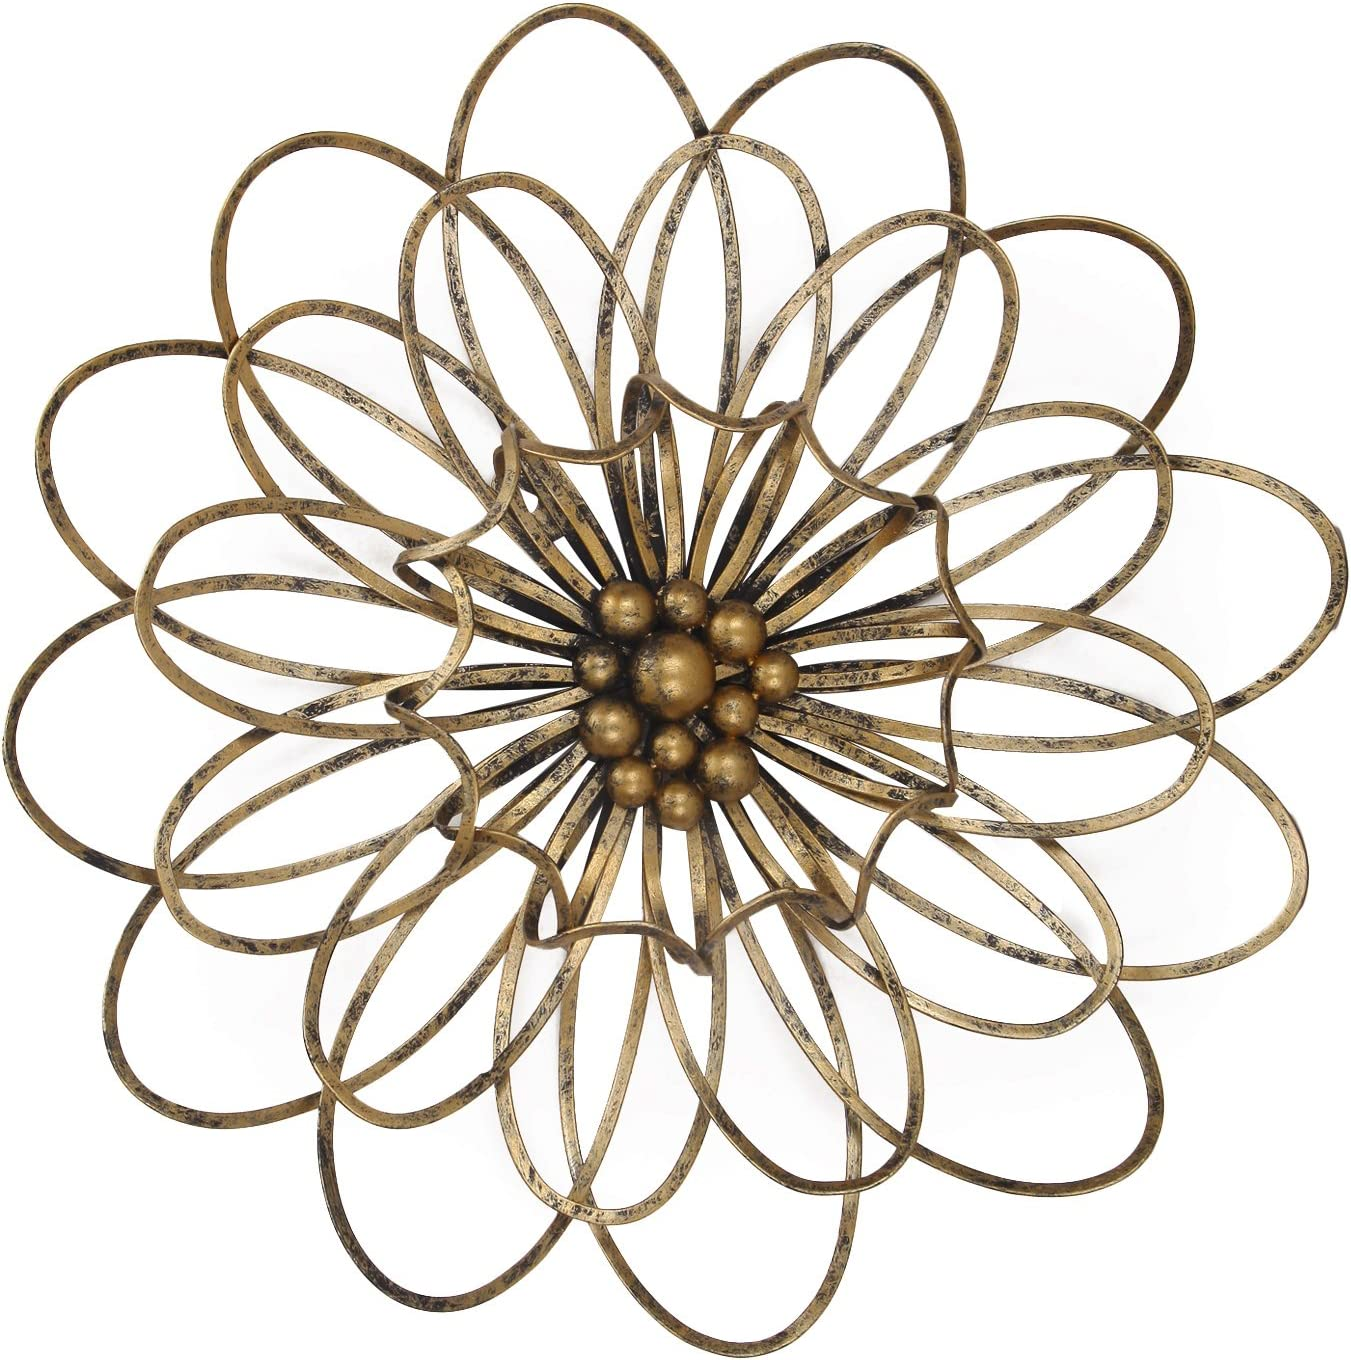 Adeco Flower Urban Design Metal Wall Decor for Nature Home Art D